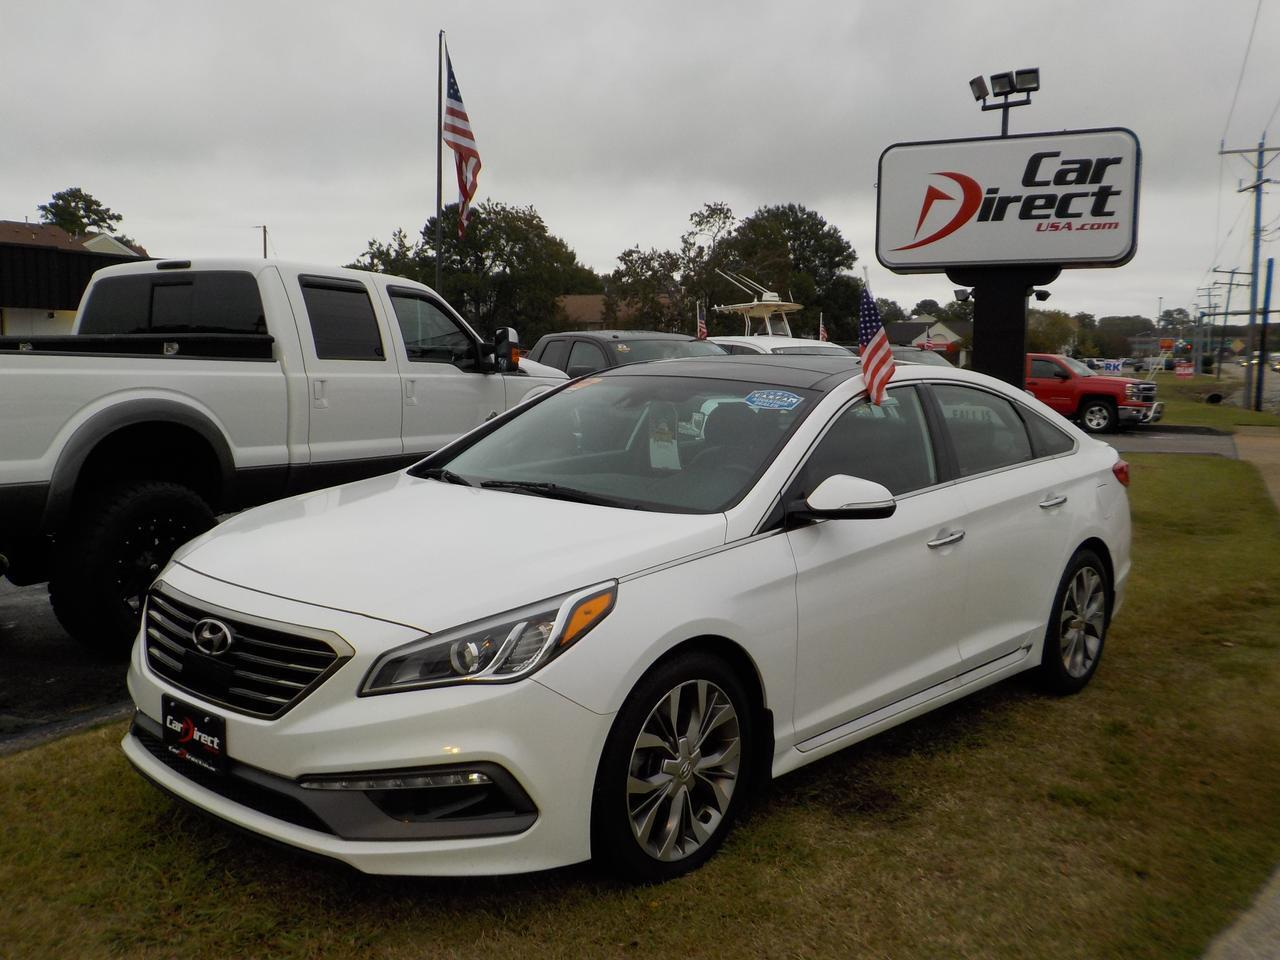 2015 HYUNDAI SONATA 2.0T Limited SPORT PACKAGE, HEATED AND COOLED LEATHER SEATS, NAVIGATION, PANO ROOF, LOADED!!! Virginia Beach VA